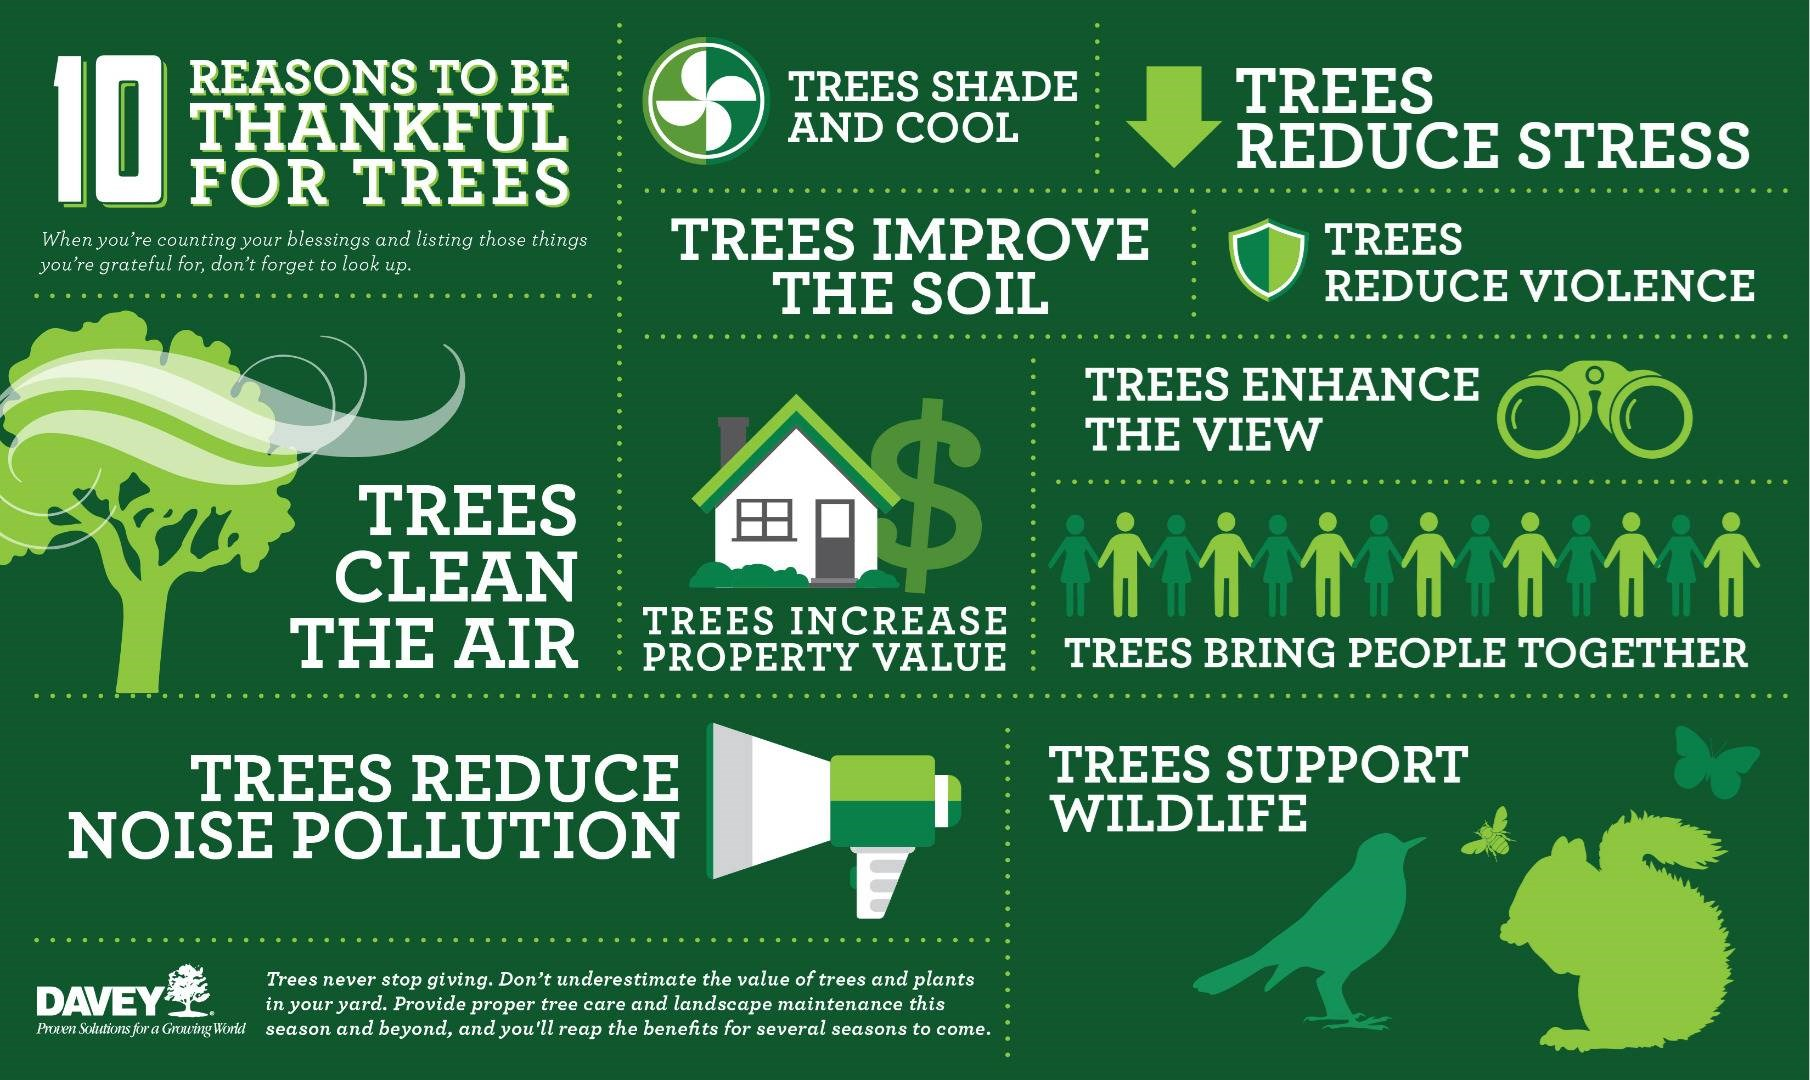 Tree Benefits - 10 Reasons to be Thankful for Trees